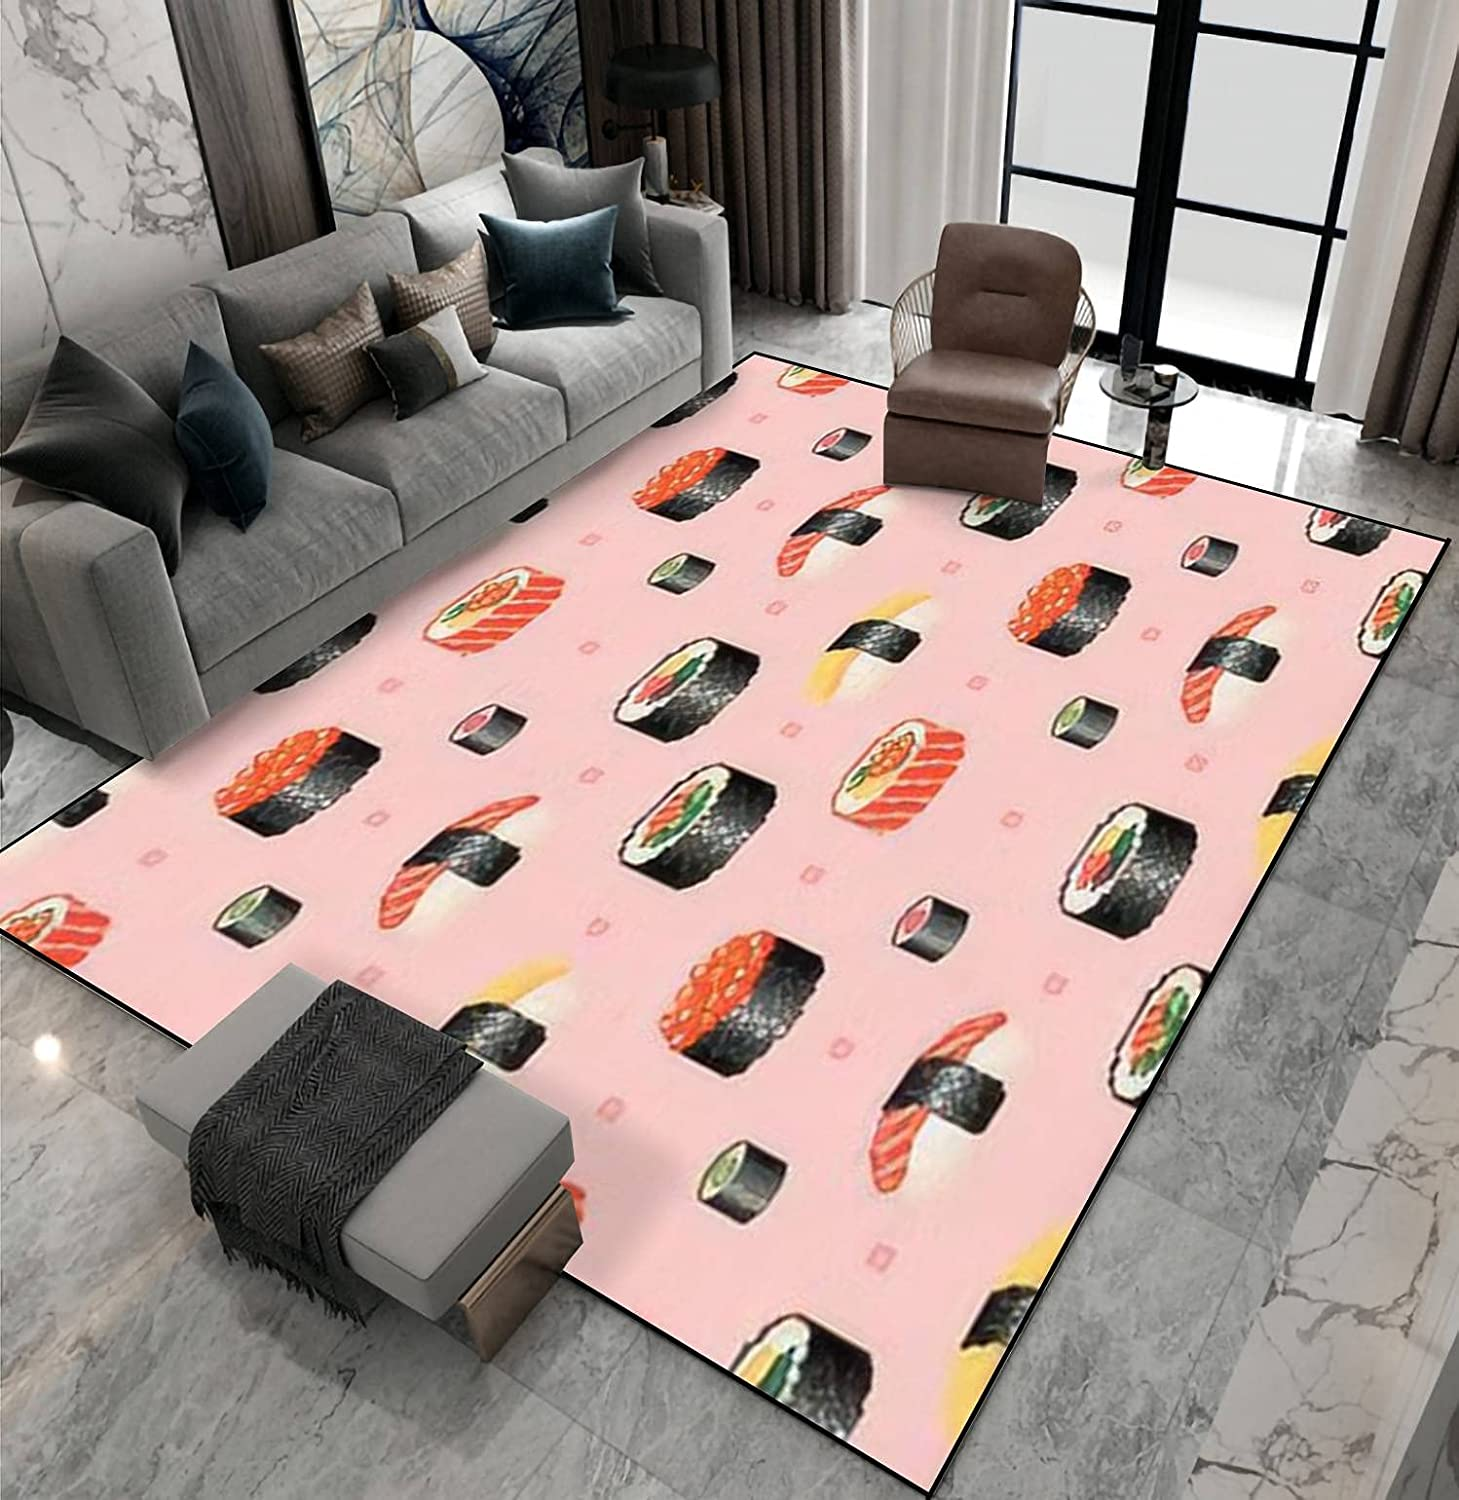 Area Rug Cheap mail order specialty store Non-Slip Floor Mat Pixel Pattern Art Seamless Pix Sushi Time sale